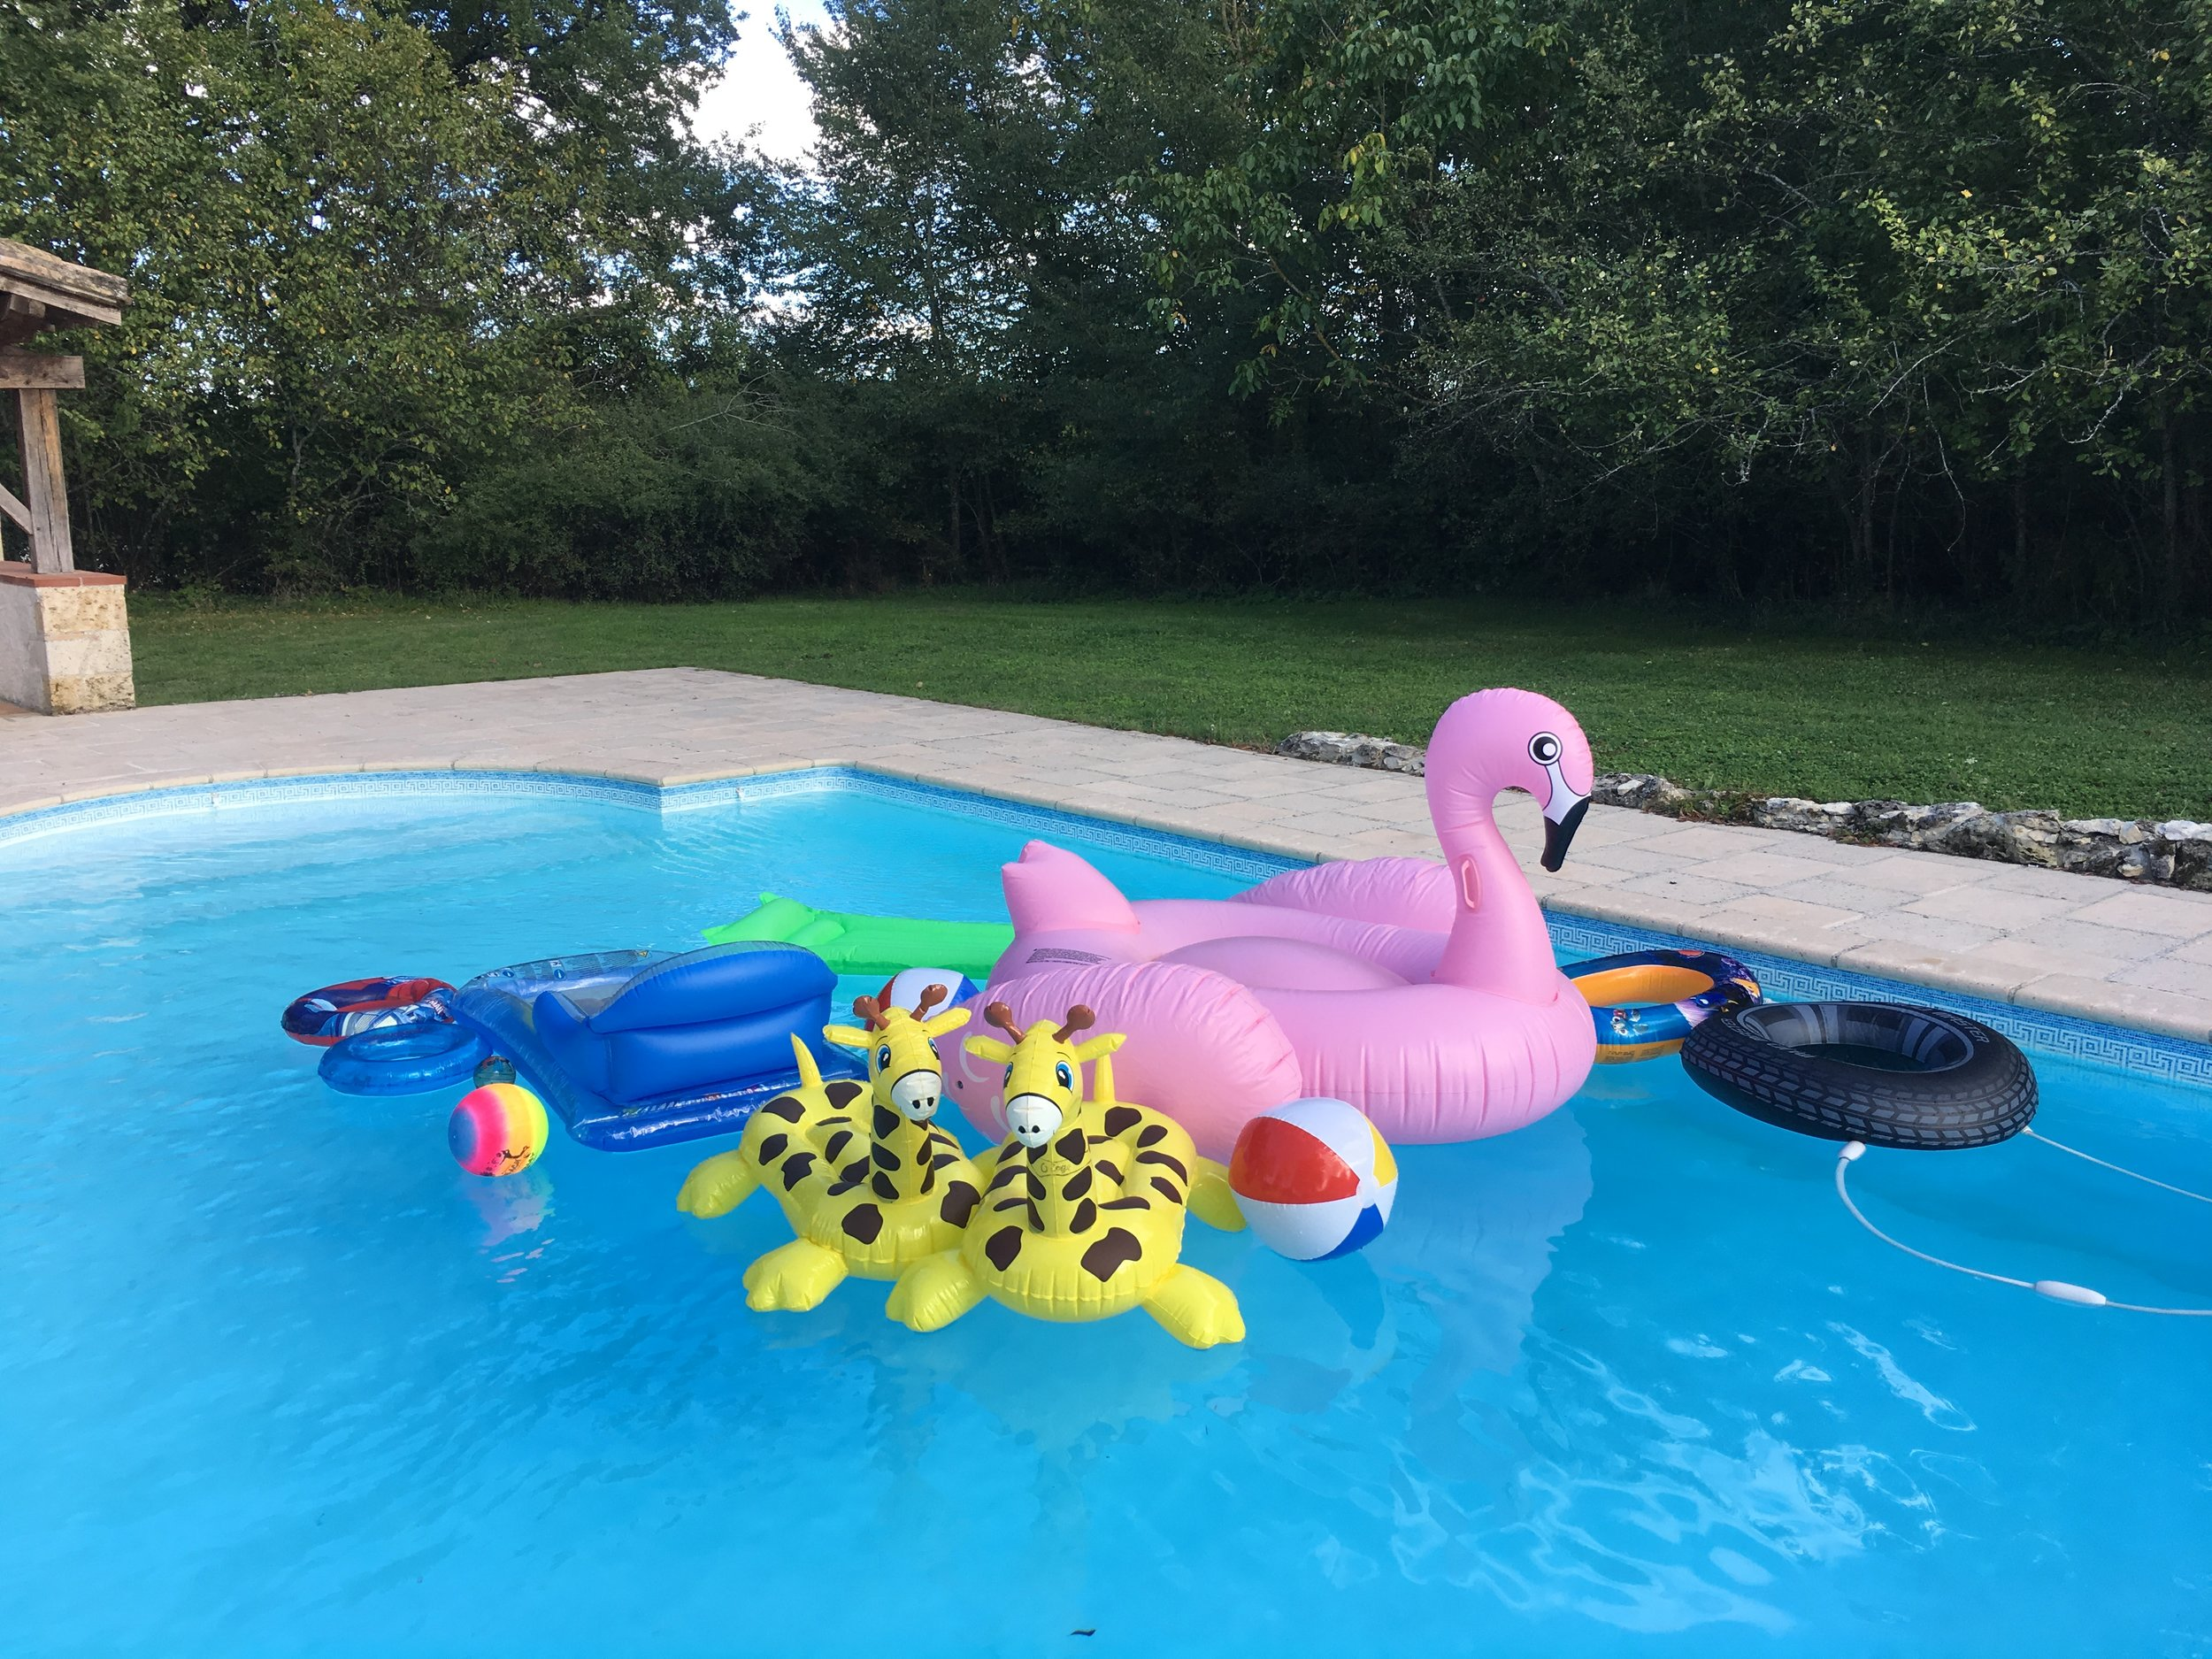 Our last guests of the year departed on the 23rd September, leaving an array of inflatables! I know that some are returning next summer so we will keep them safe 'till then.